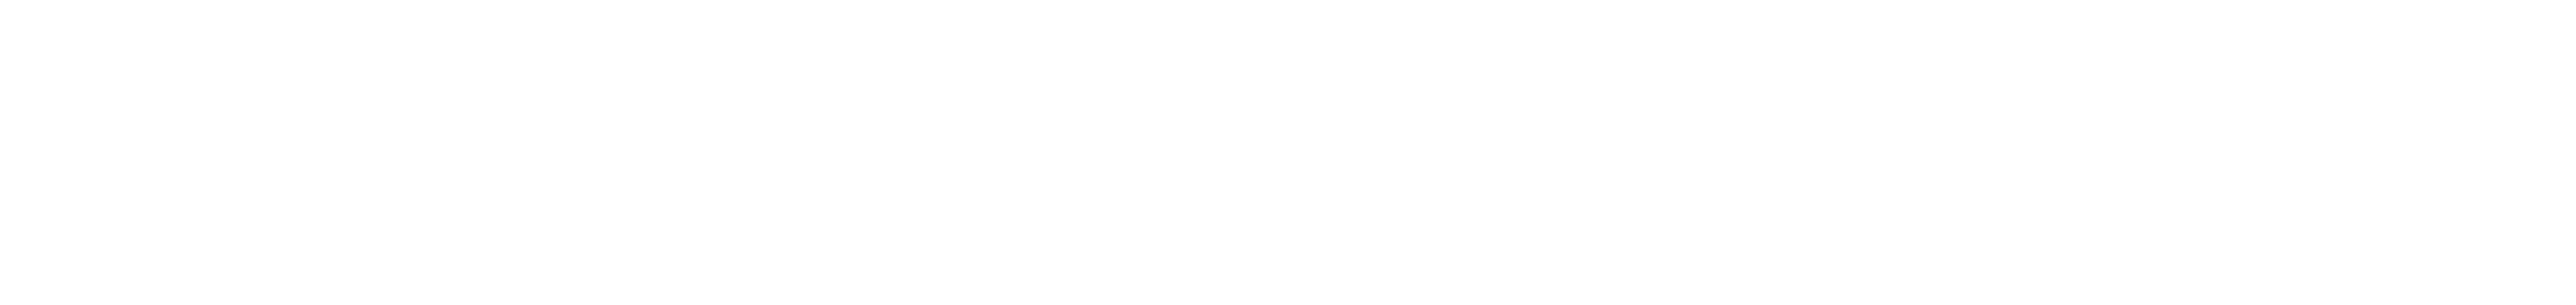 Pathfinder: A Canadian Journal for Information Science Students and Early Career Professionals.